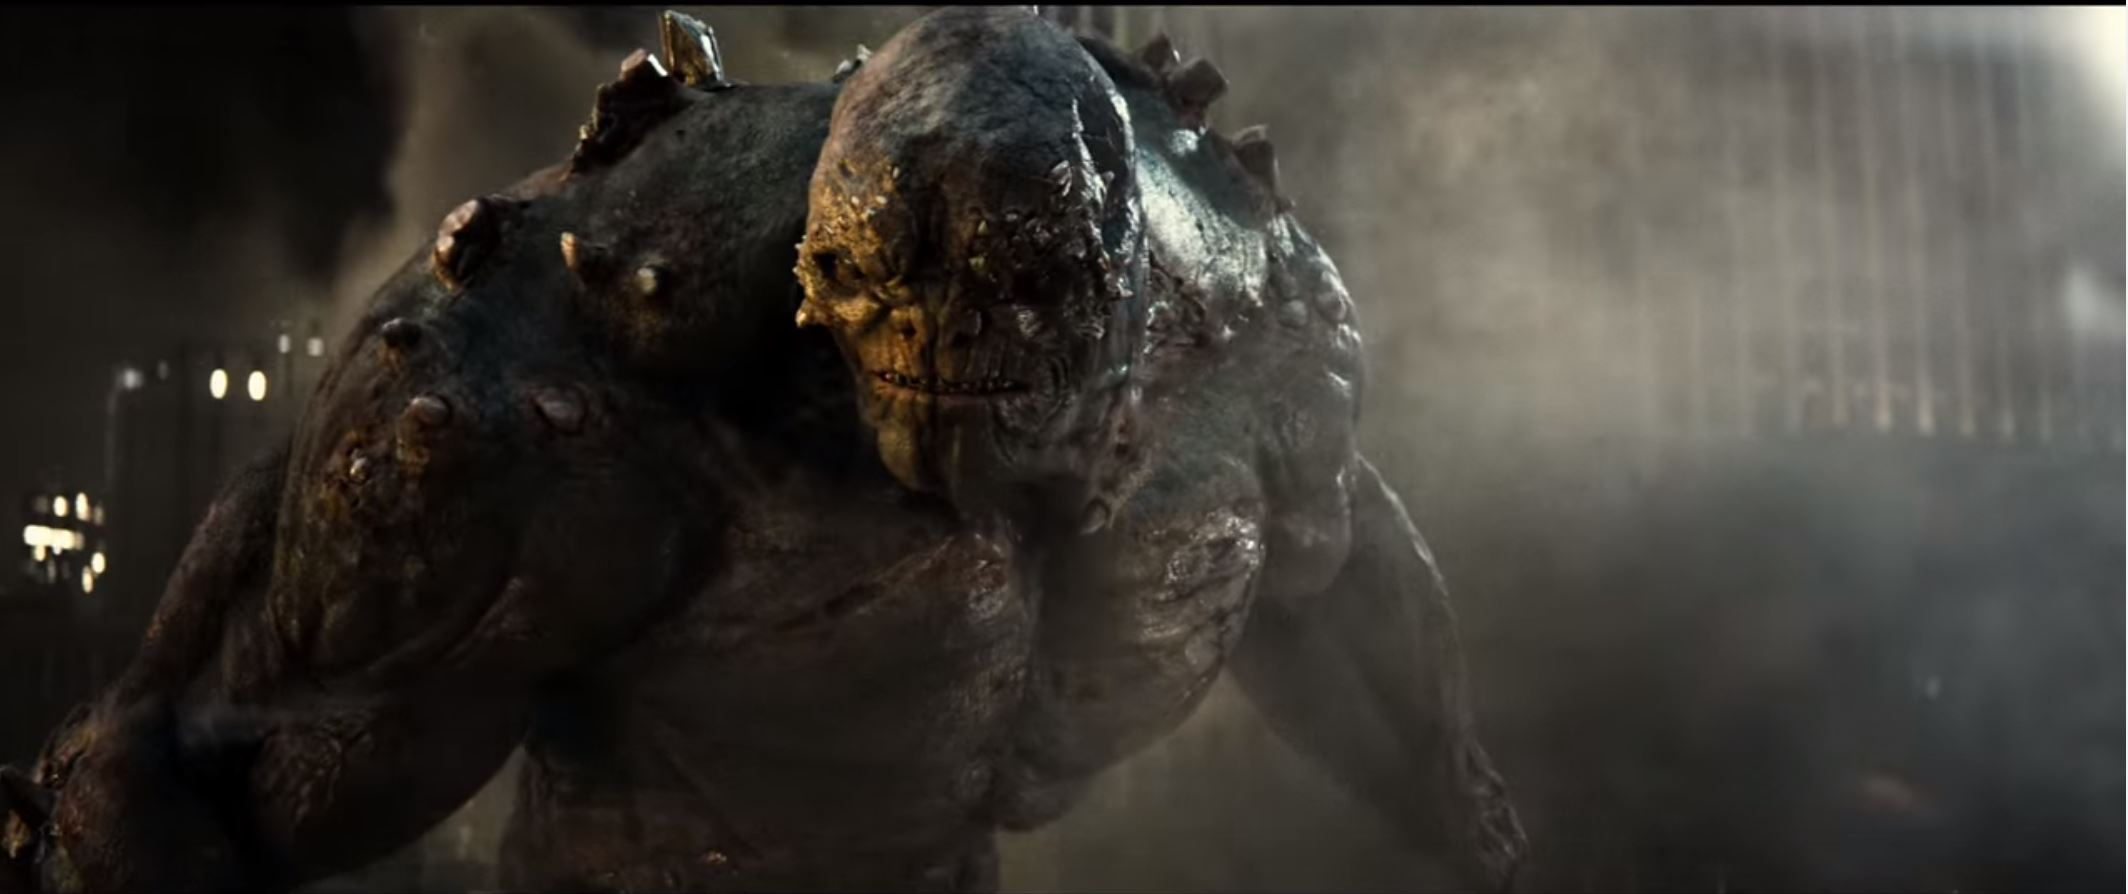 NEW Batman v Superman: Dawn of Justice Trailer Reveals DOOMSDAY